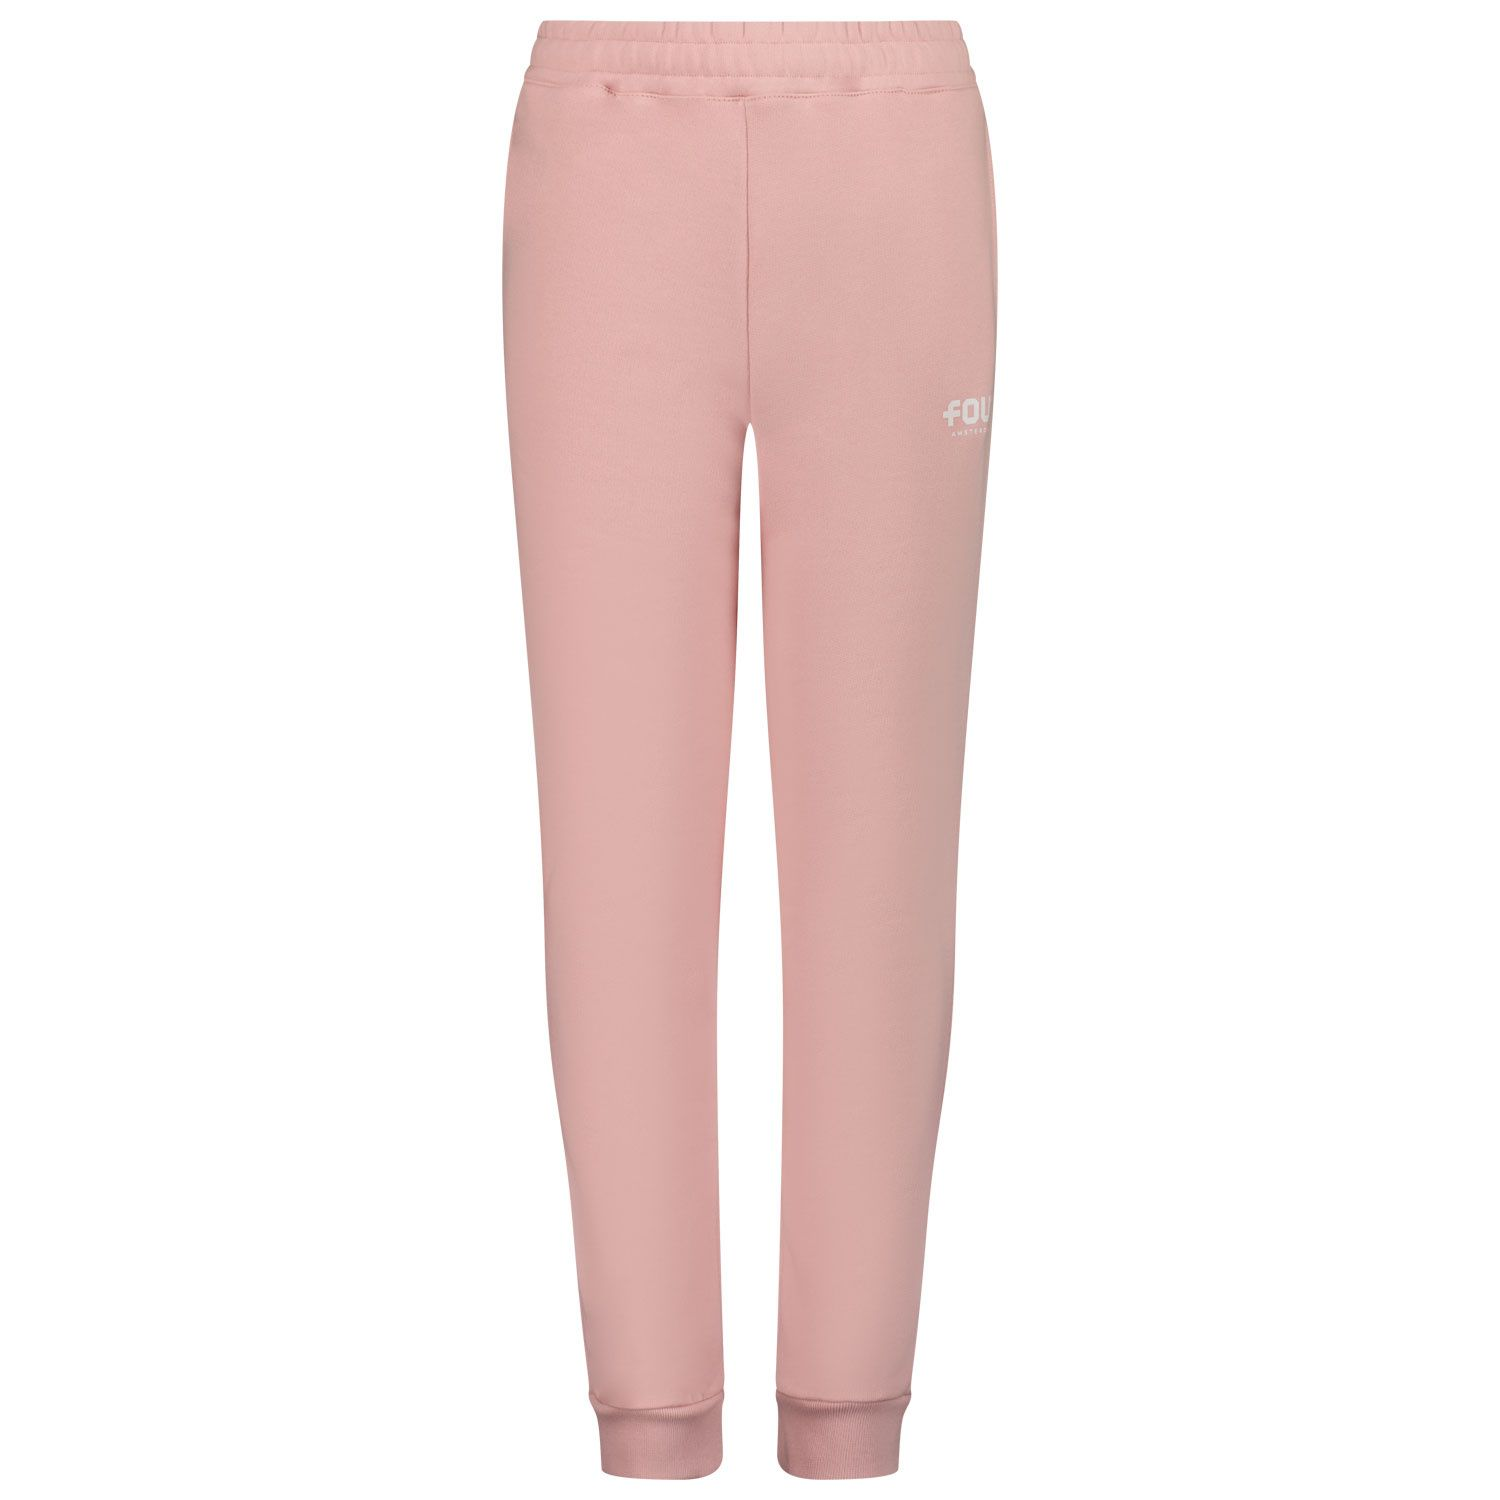 Picture of Four PANTS CIRCLES kids jeans light pink